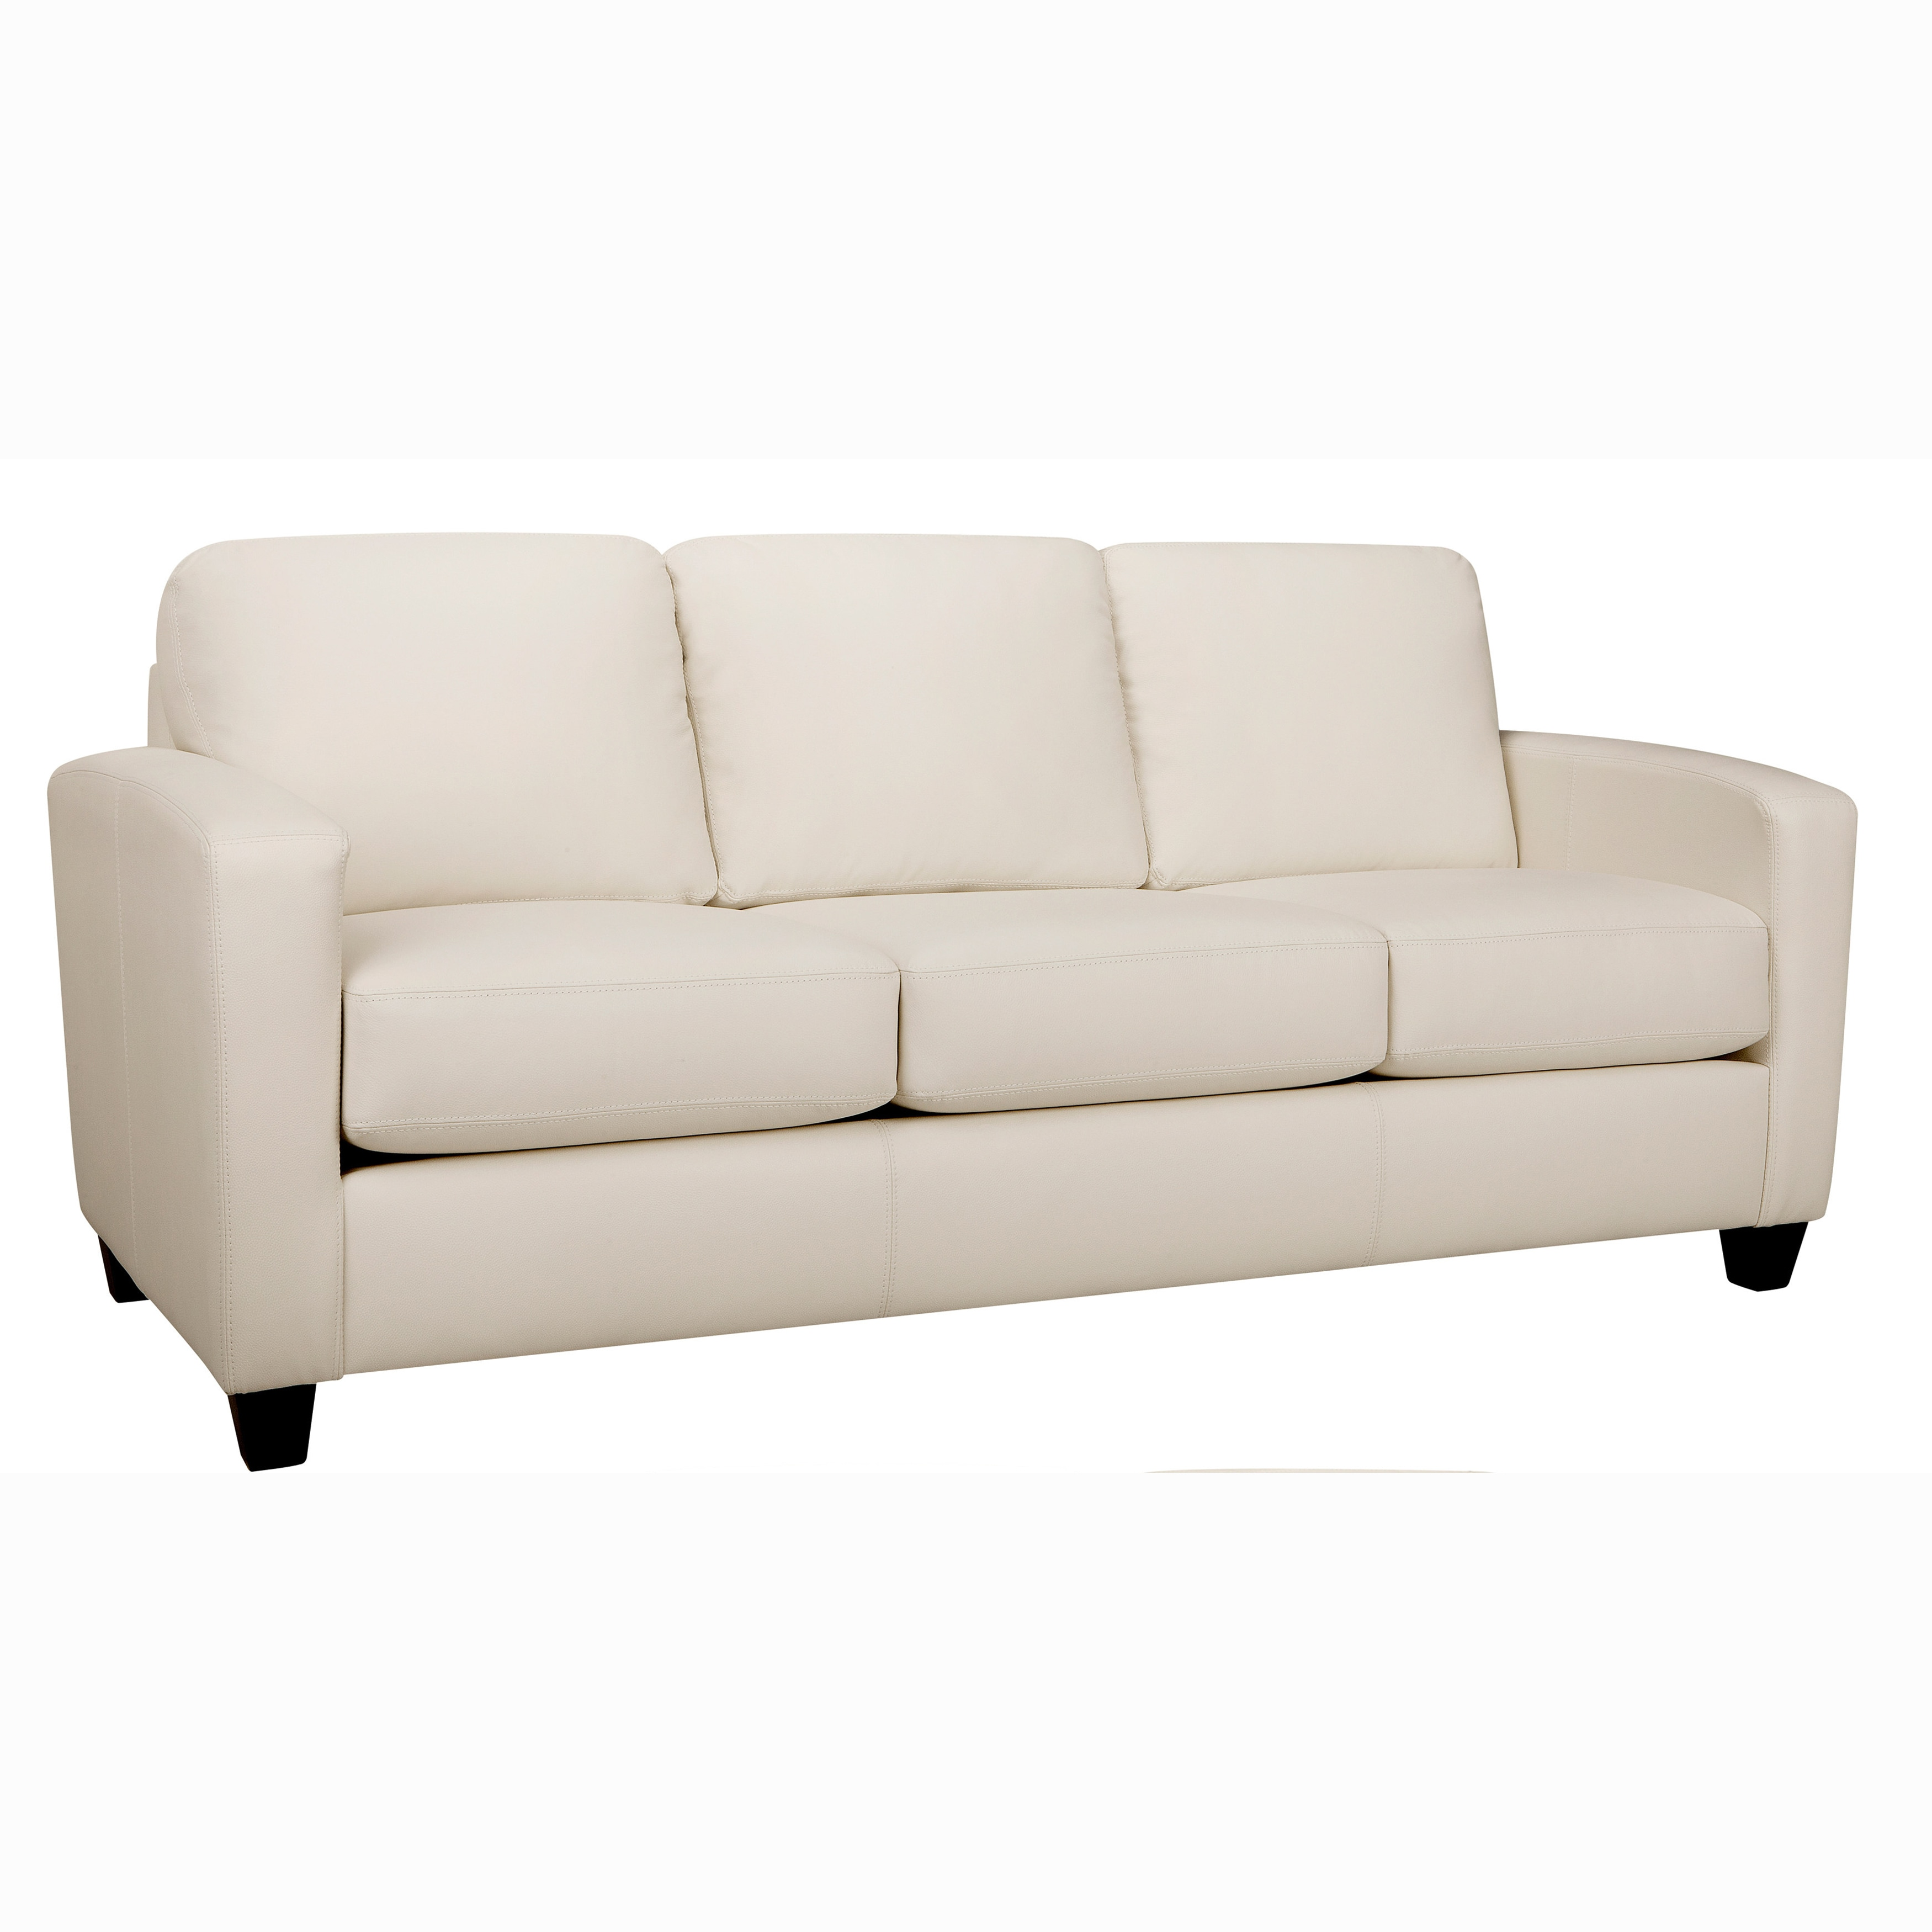 Shop Bryce White Italian Top Grain Leather Sofa On Sale Free